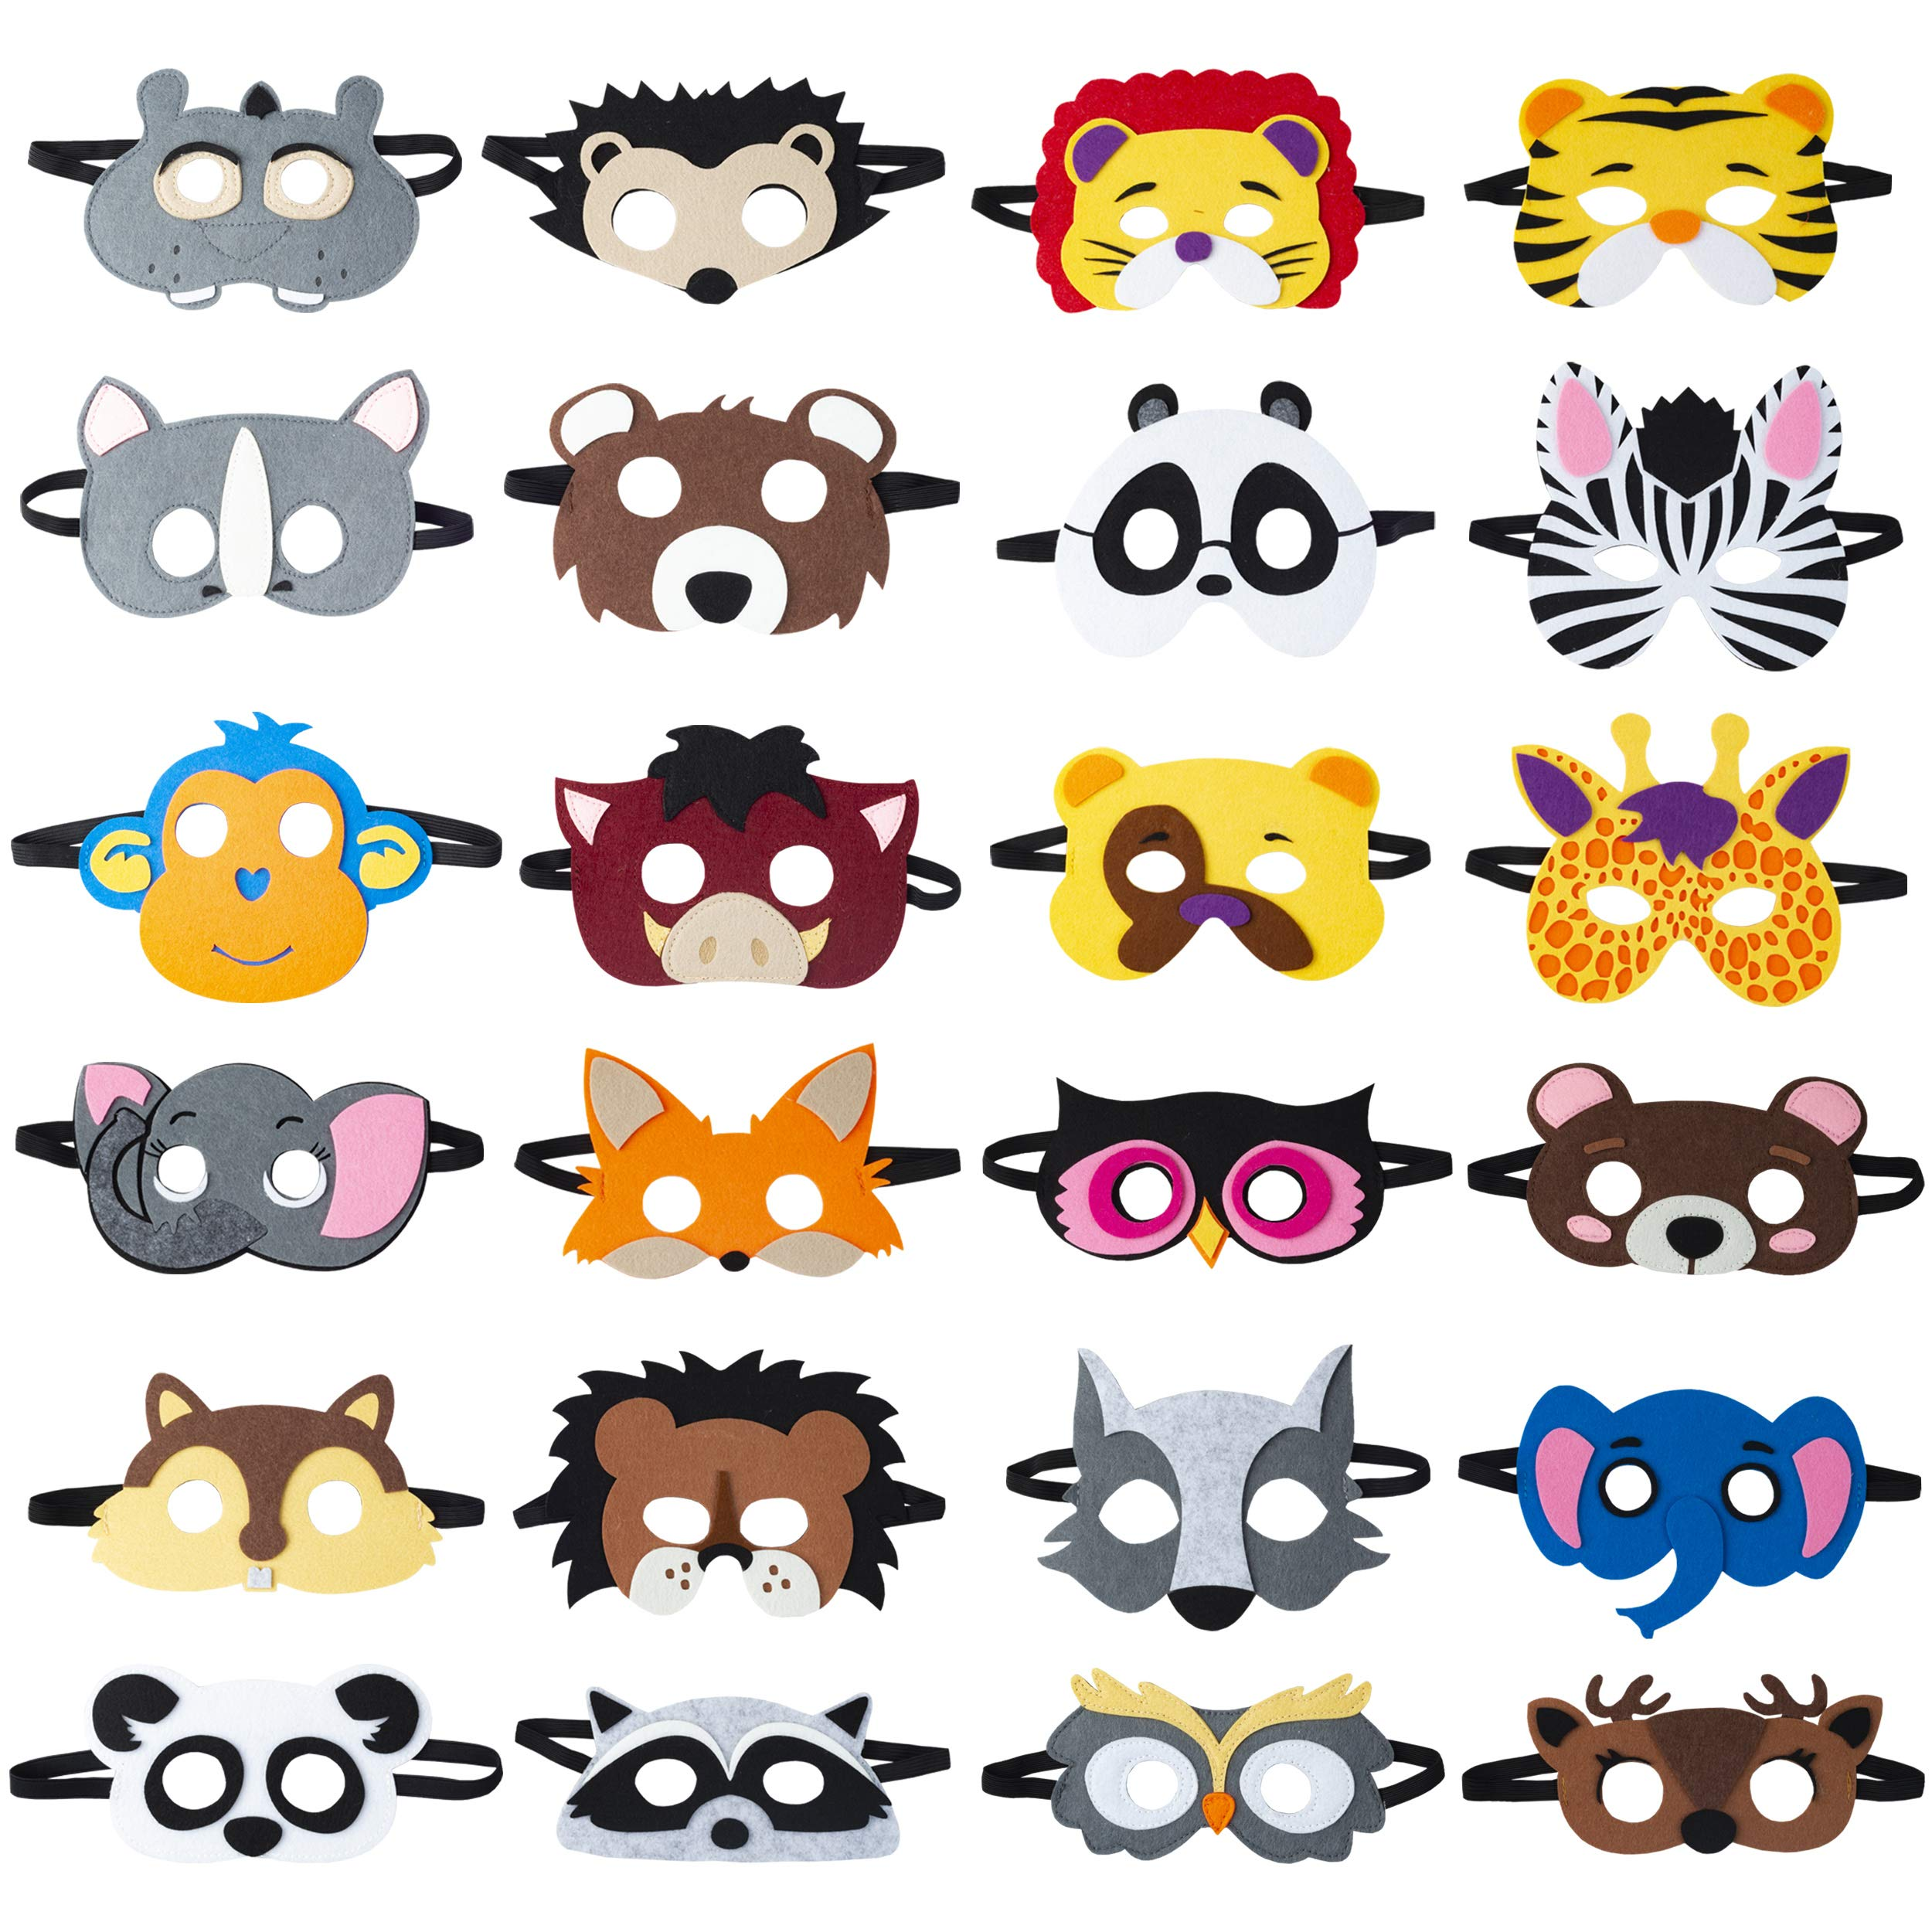 TEEHOME Animal Felt Masks Party Favors (24 Packs) for Kid - Safari Party Supplies with 24 Different Types - Great Idea for Petting Zoo | Farmhouse | Jungle Safari Theme Birthday Party by TEEHOME